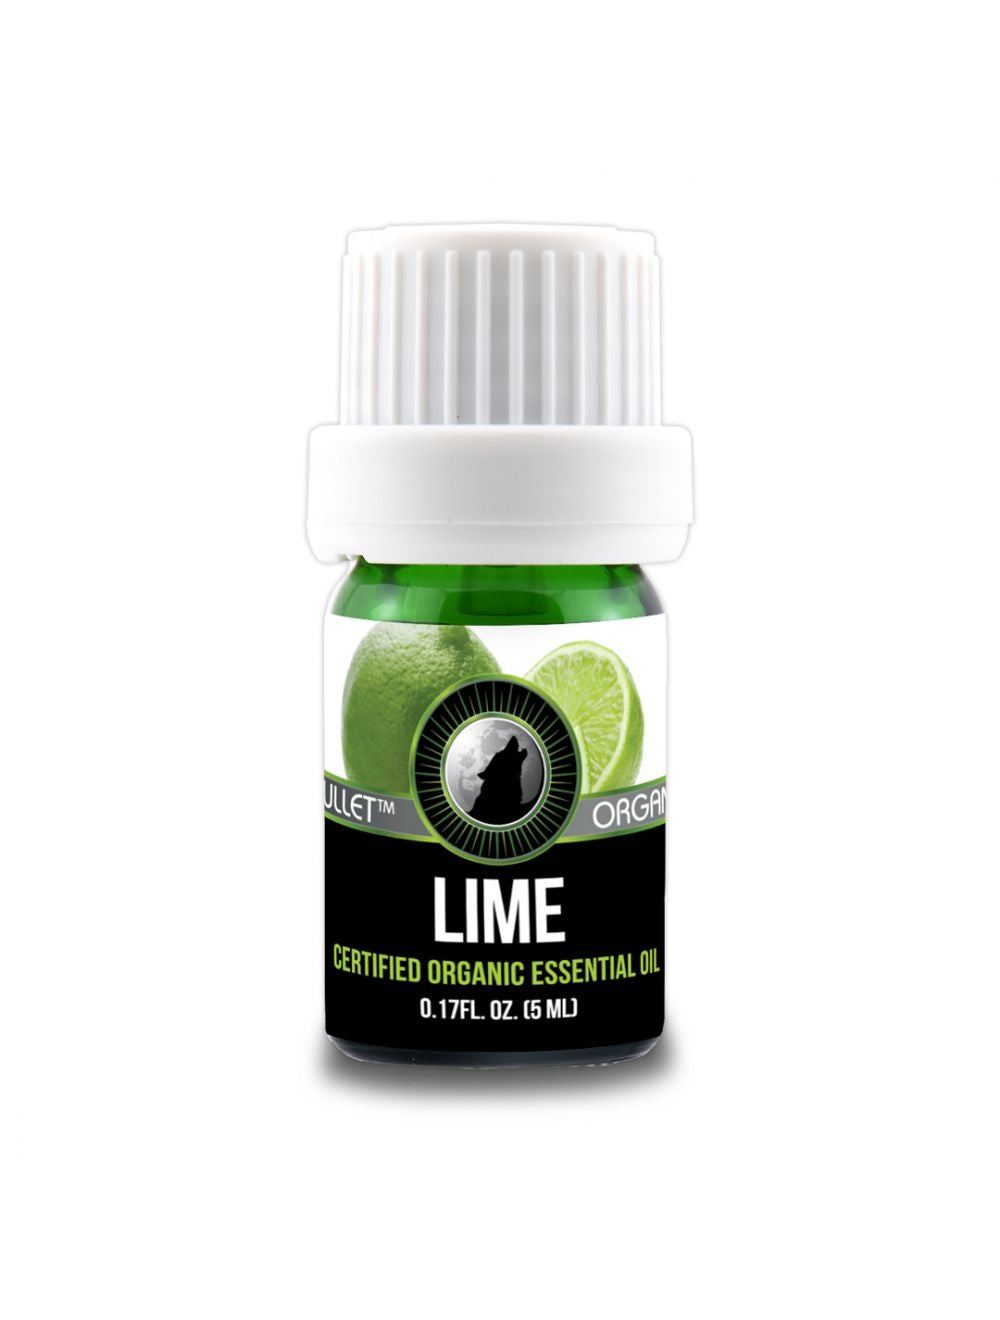 Lime Certified Organic Essential Oil